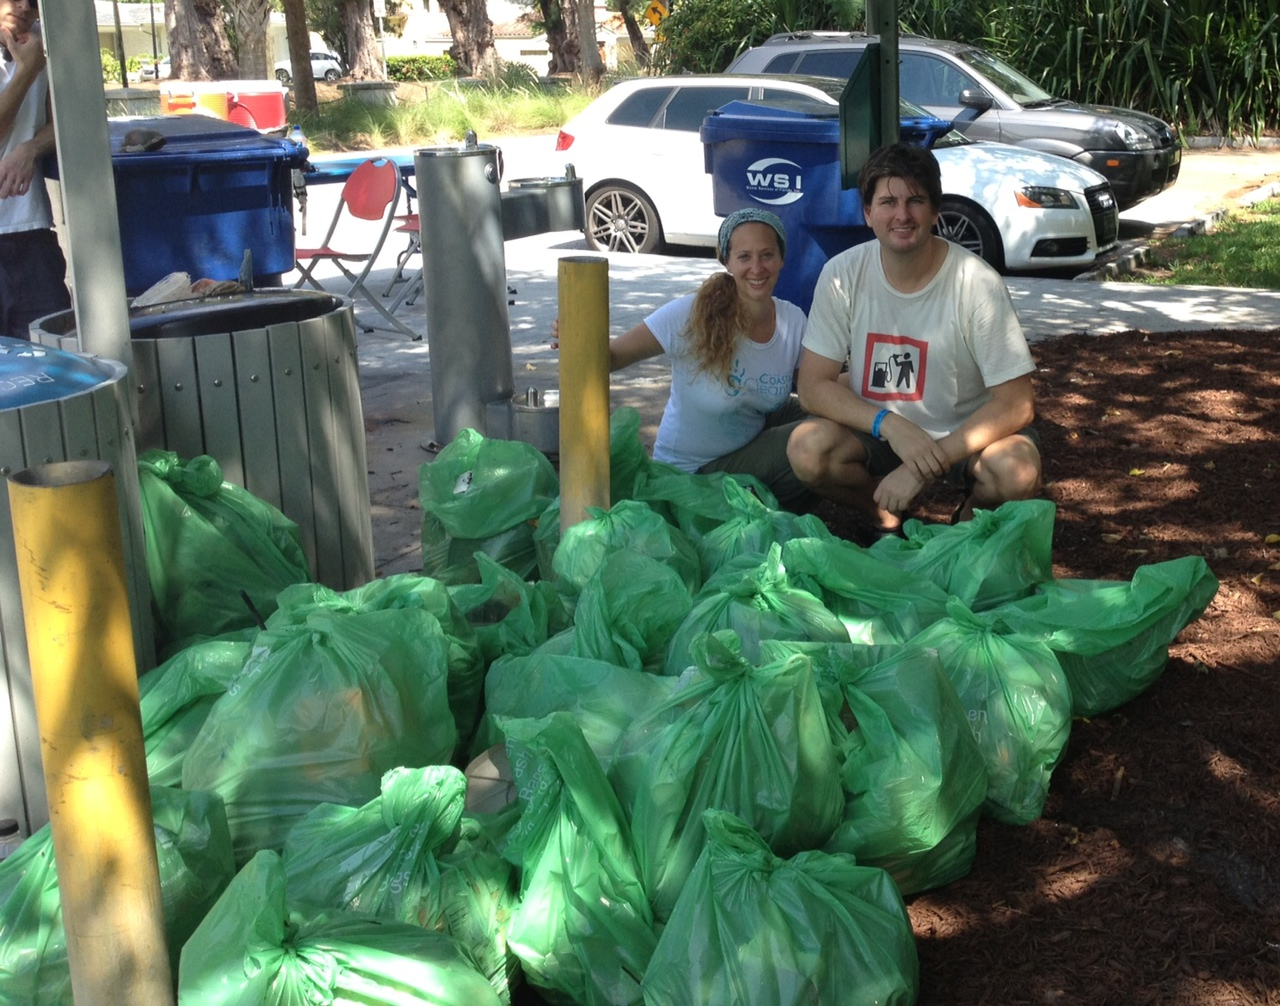 Coastal_Cleanup_Day_Sept_2013_-_Pine_Tree_Park_2.JPG